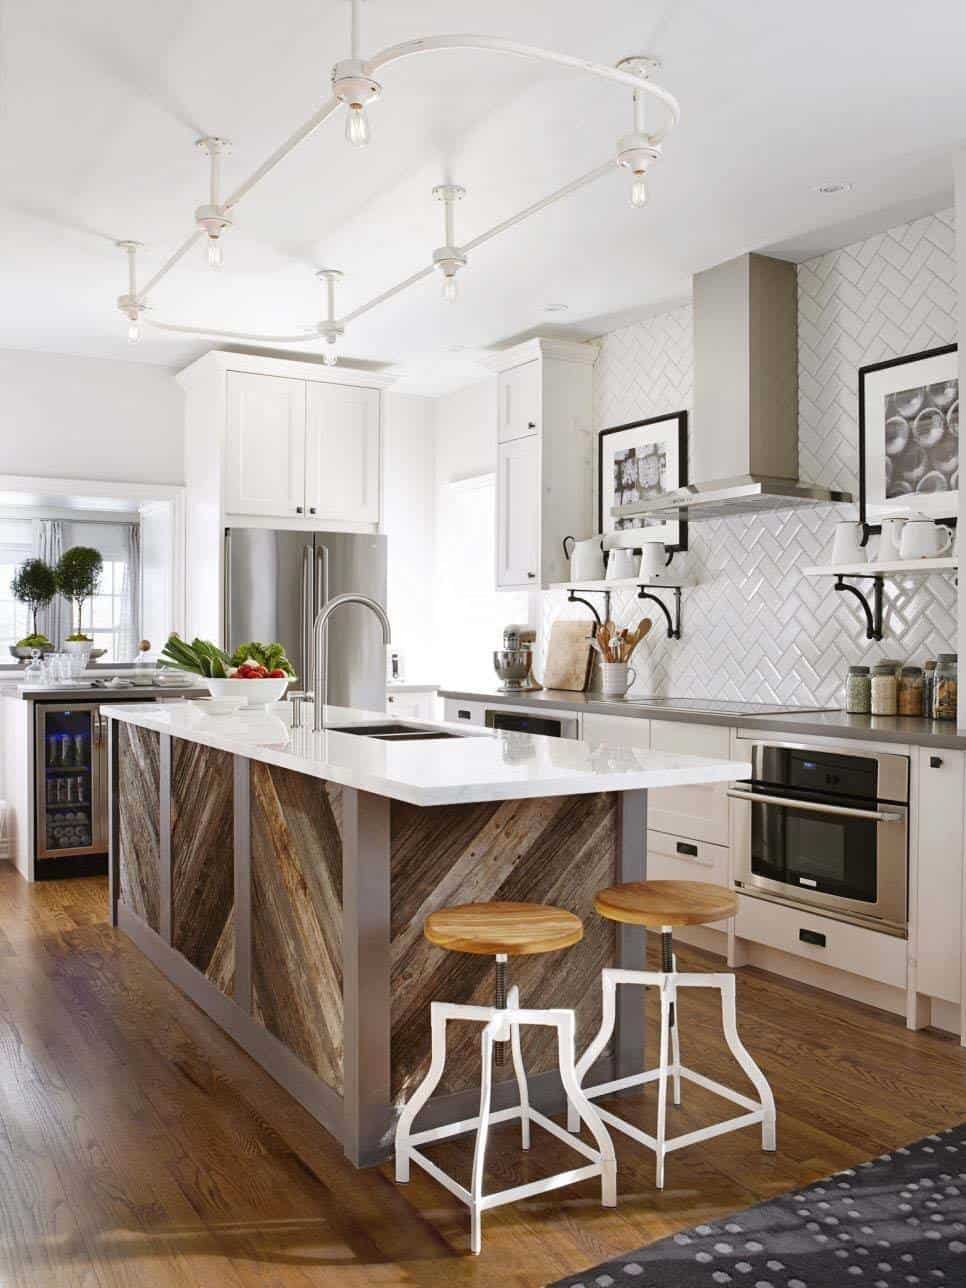 kitchen island options 30 brilliant kitchen island ideas that make a statement 3476